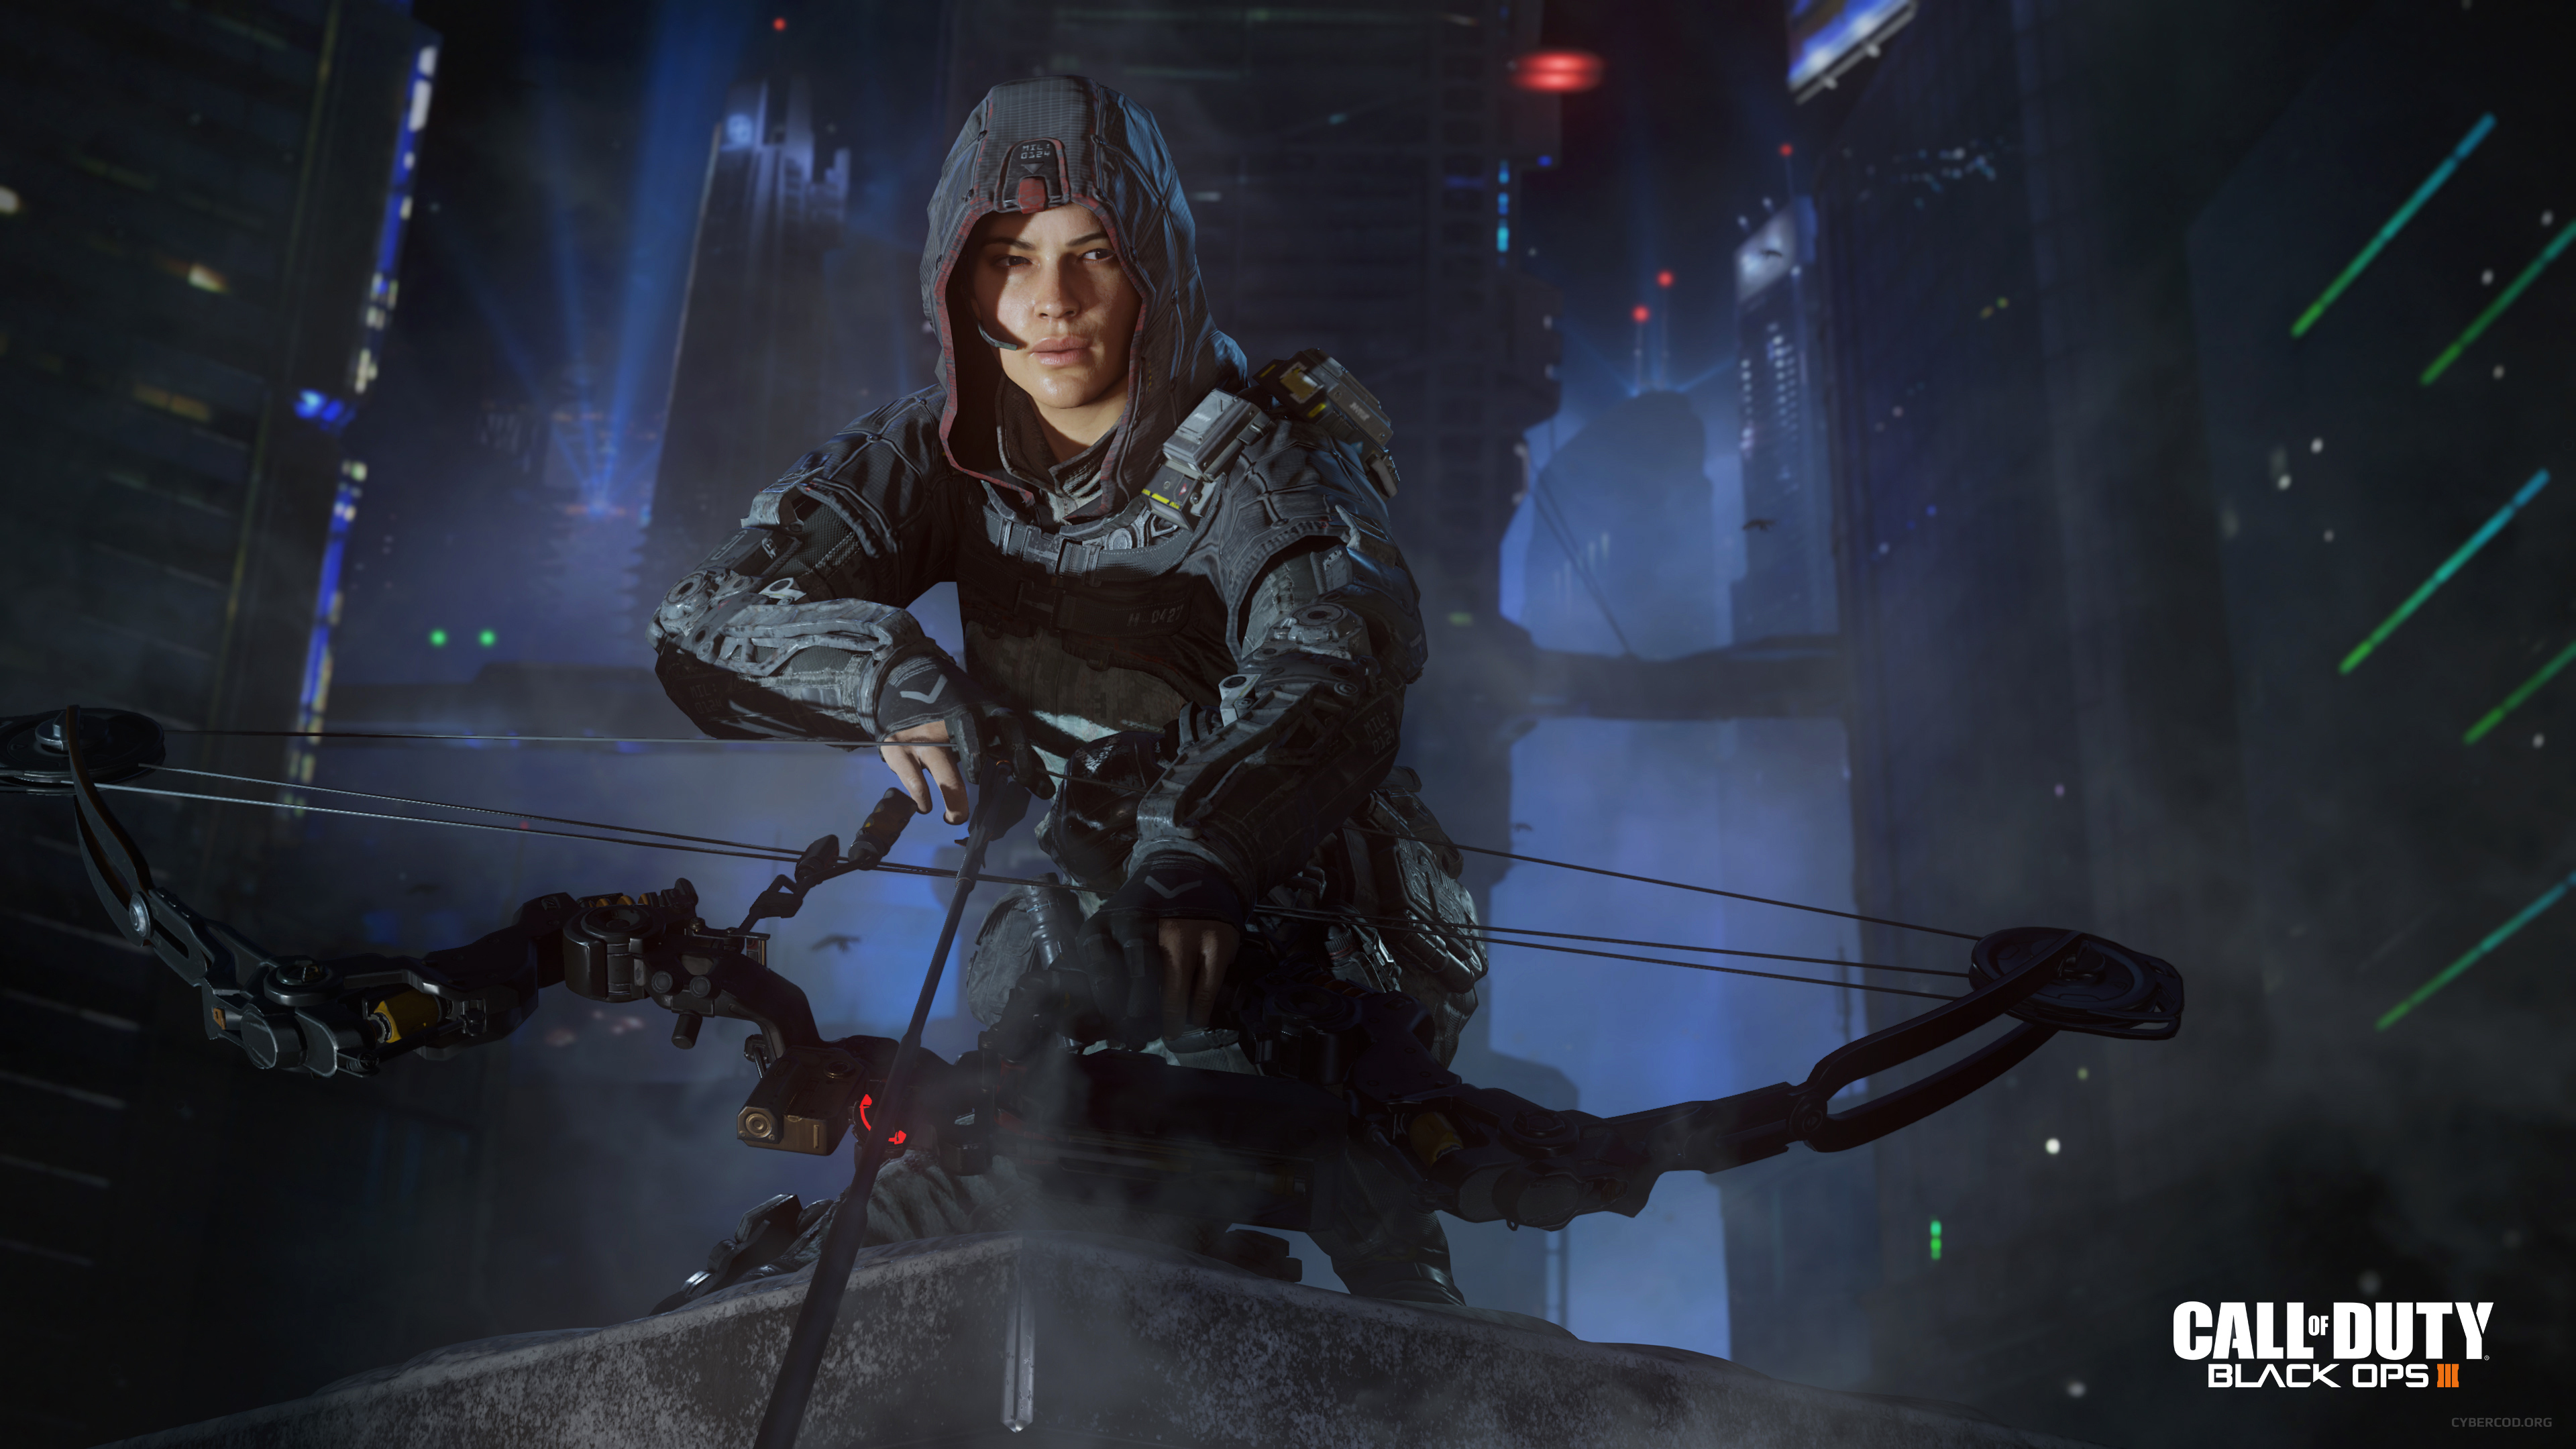 Black Ops 3 Specialist Outrider